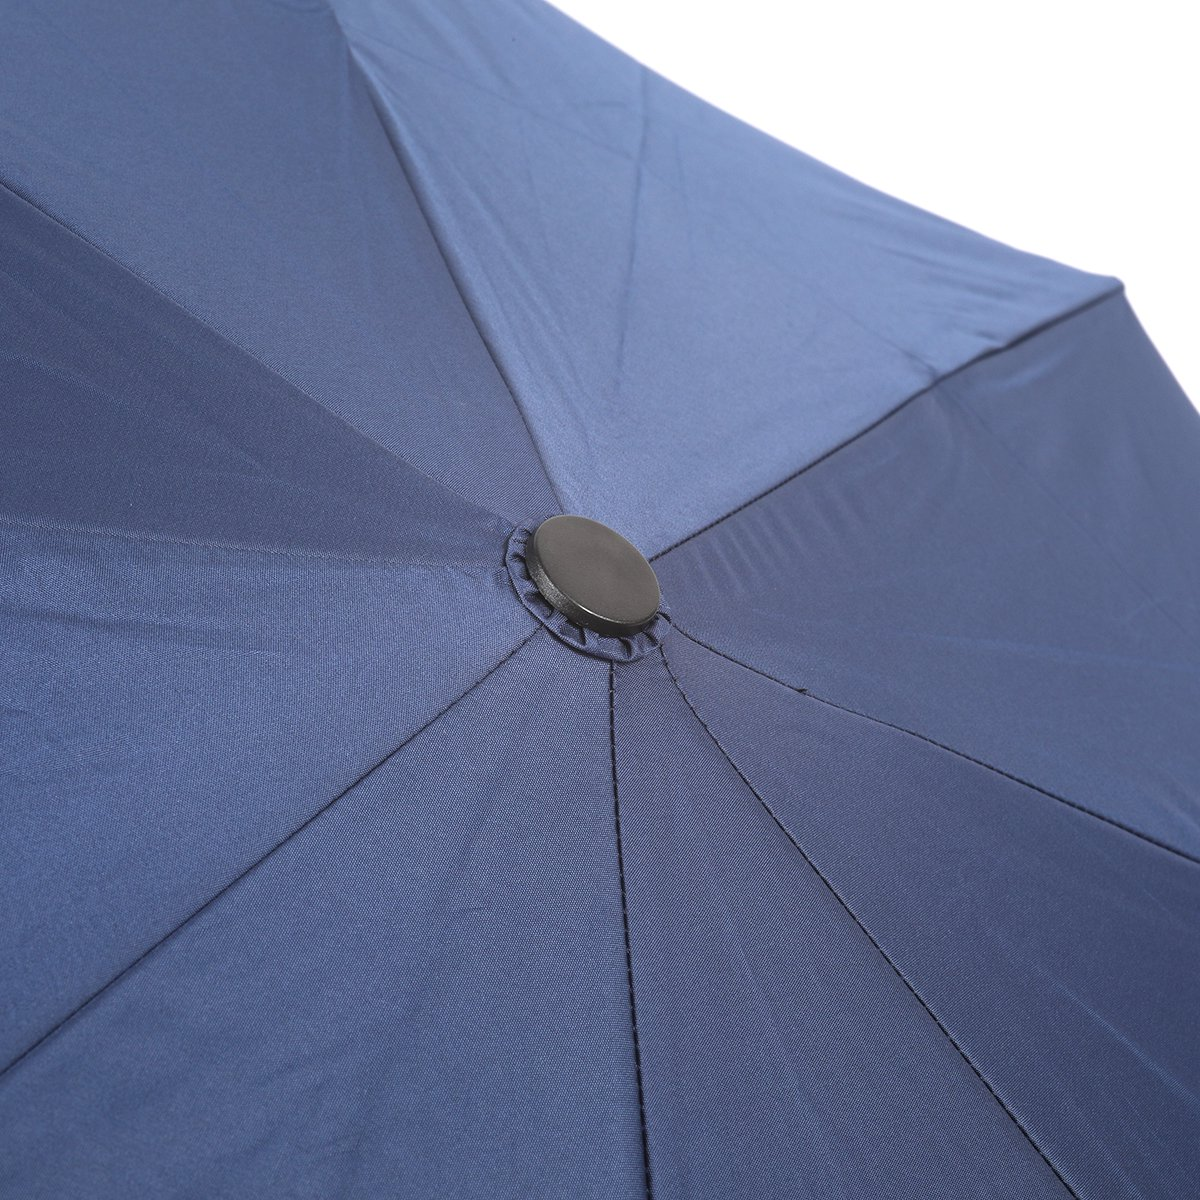 588K UV AUTOMATIC FOLDING UMBRELLA 詳細画像5